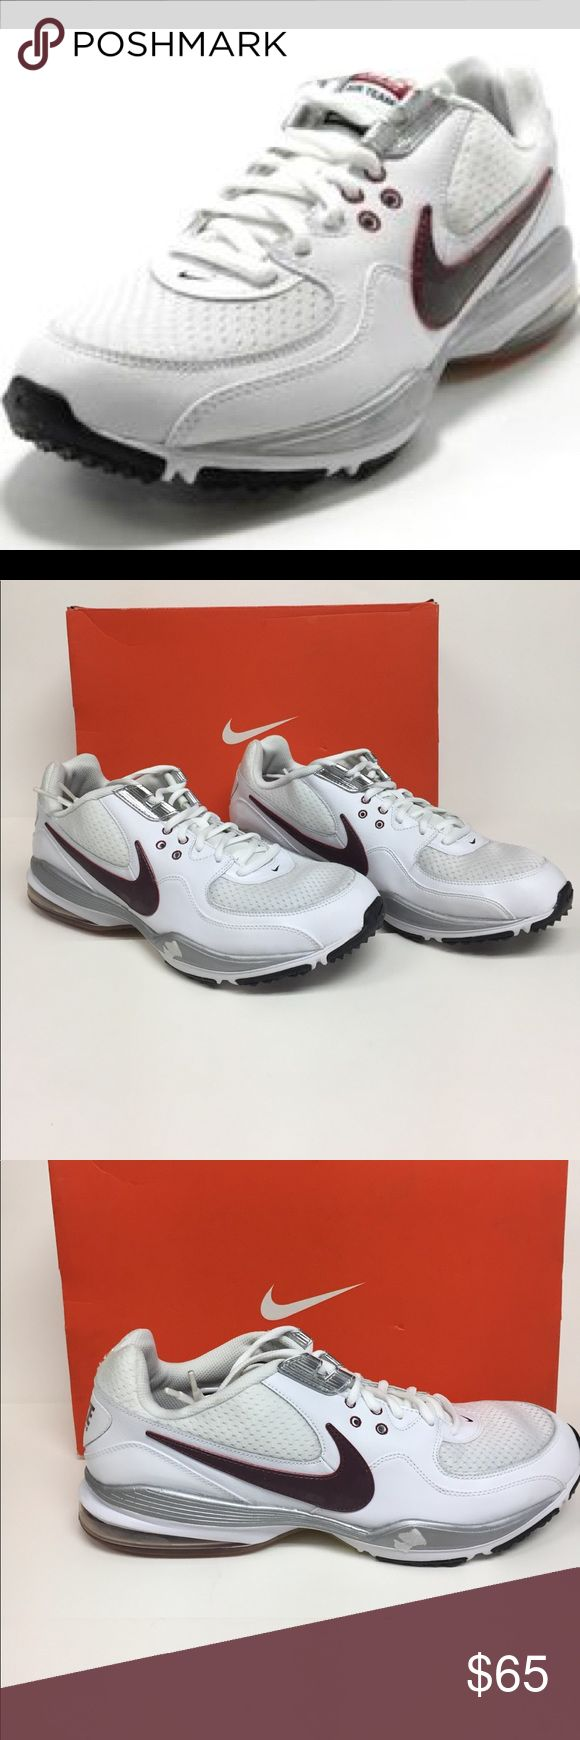 Nike Air Max Team St Running Shoe 407862 161 NIB White leather upper features gloss white overlays over breathable white mesh fabric lace up front. Glossy maroon red Nike swoosh. Soft foam like midsole with Max air heel chamber. High grip rubber outsole. Color is white/team red/black. Size 14 women's or men's 12 1/2. Can be either. Brand-new in box Nike Shoes Sneakers